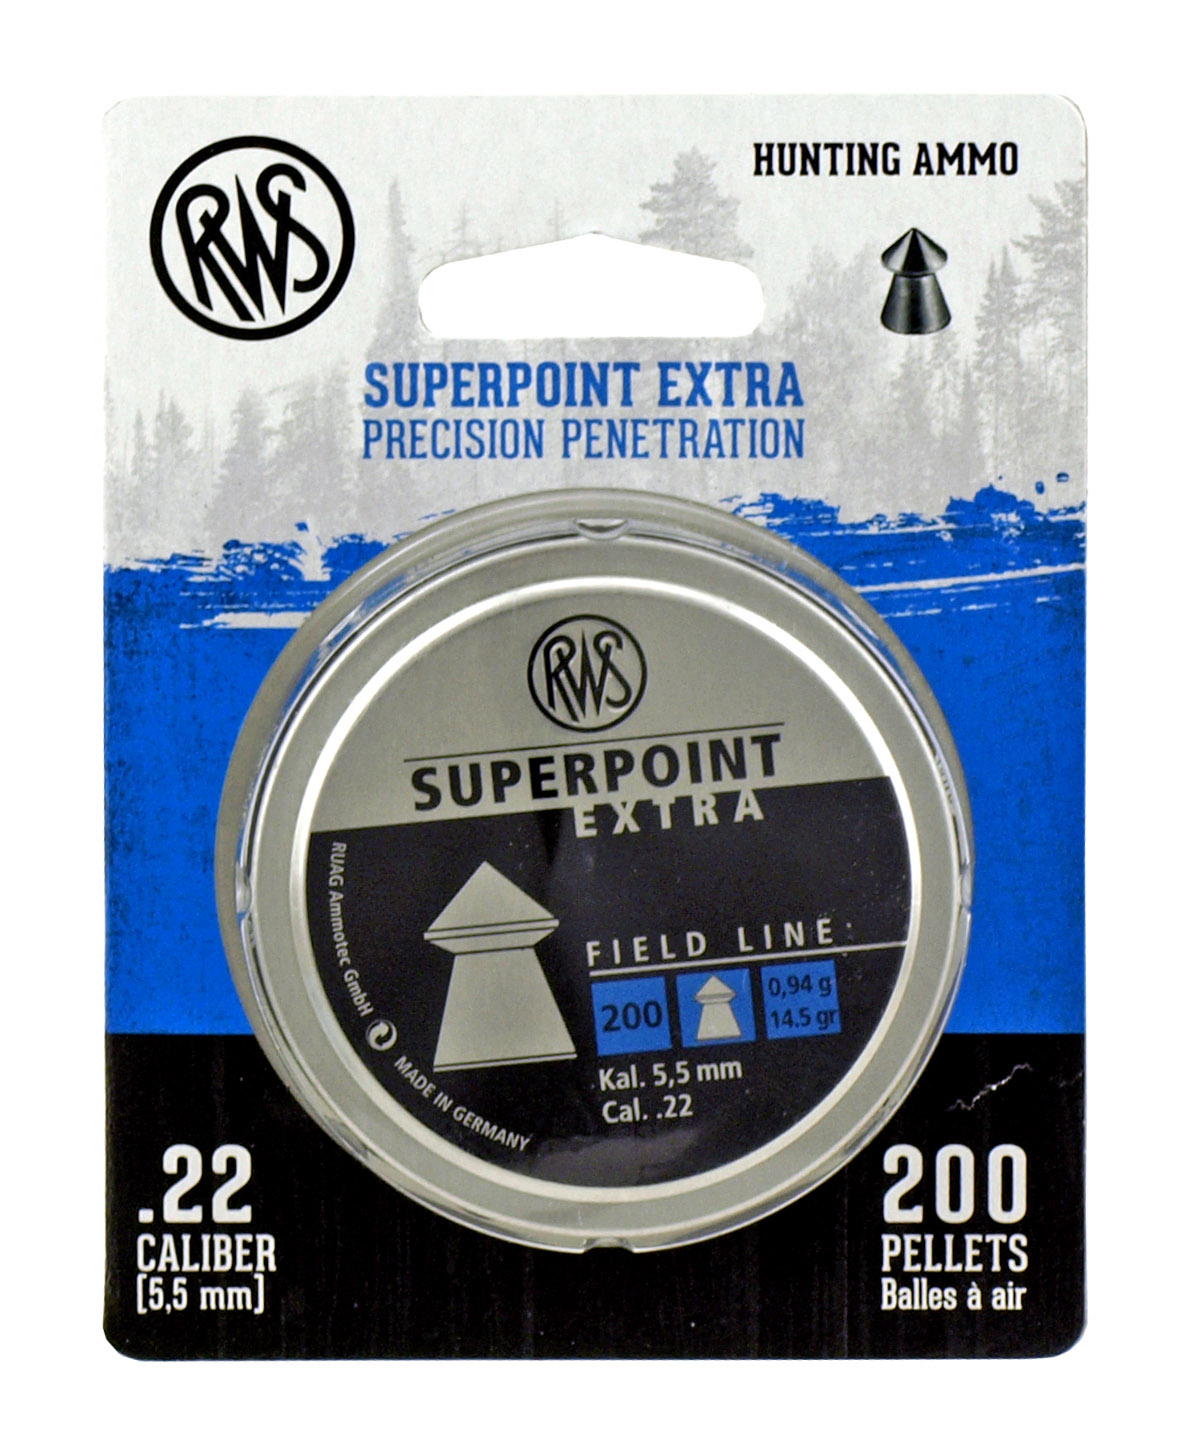 200 pc. RWS Superpoint Extra Precision Hunting Ammo .22 Caliber Airgun Pellet Ammo